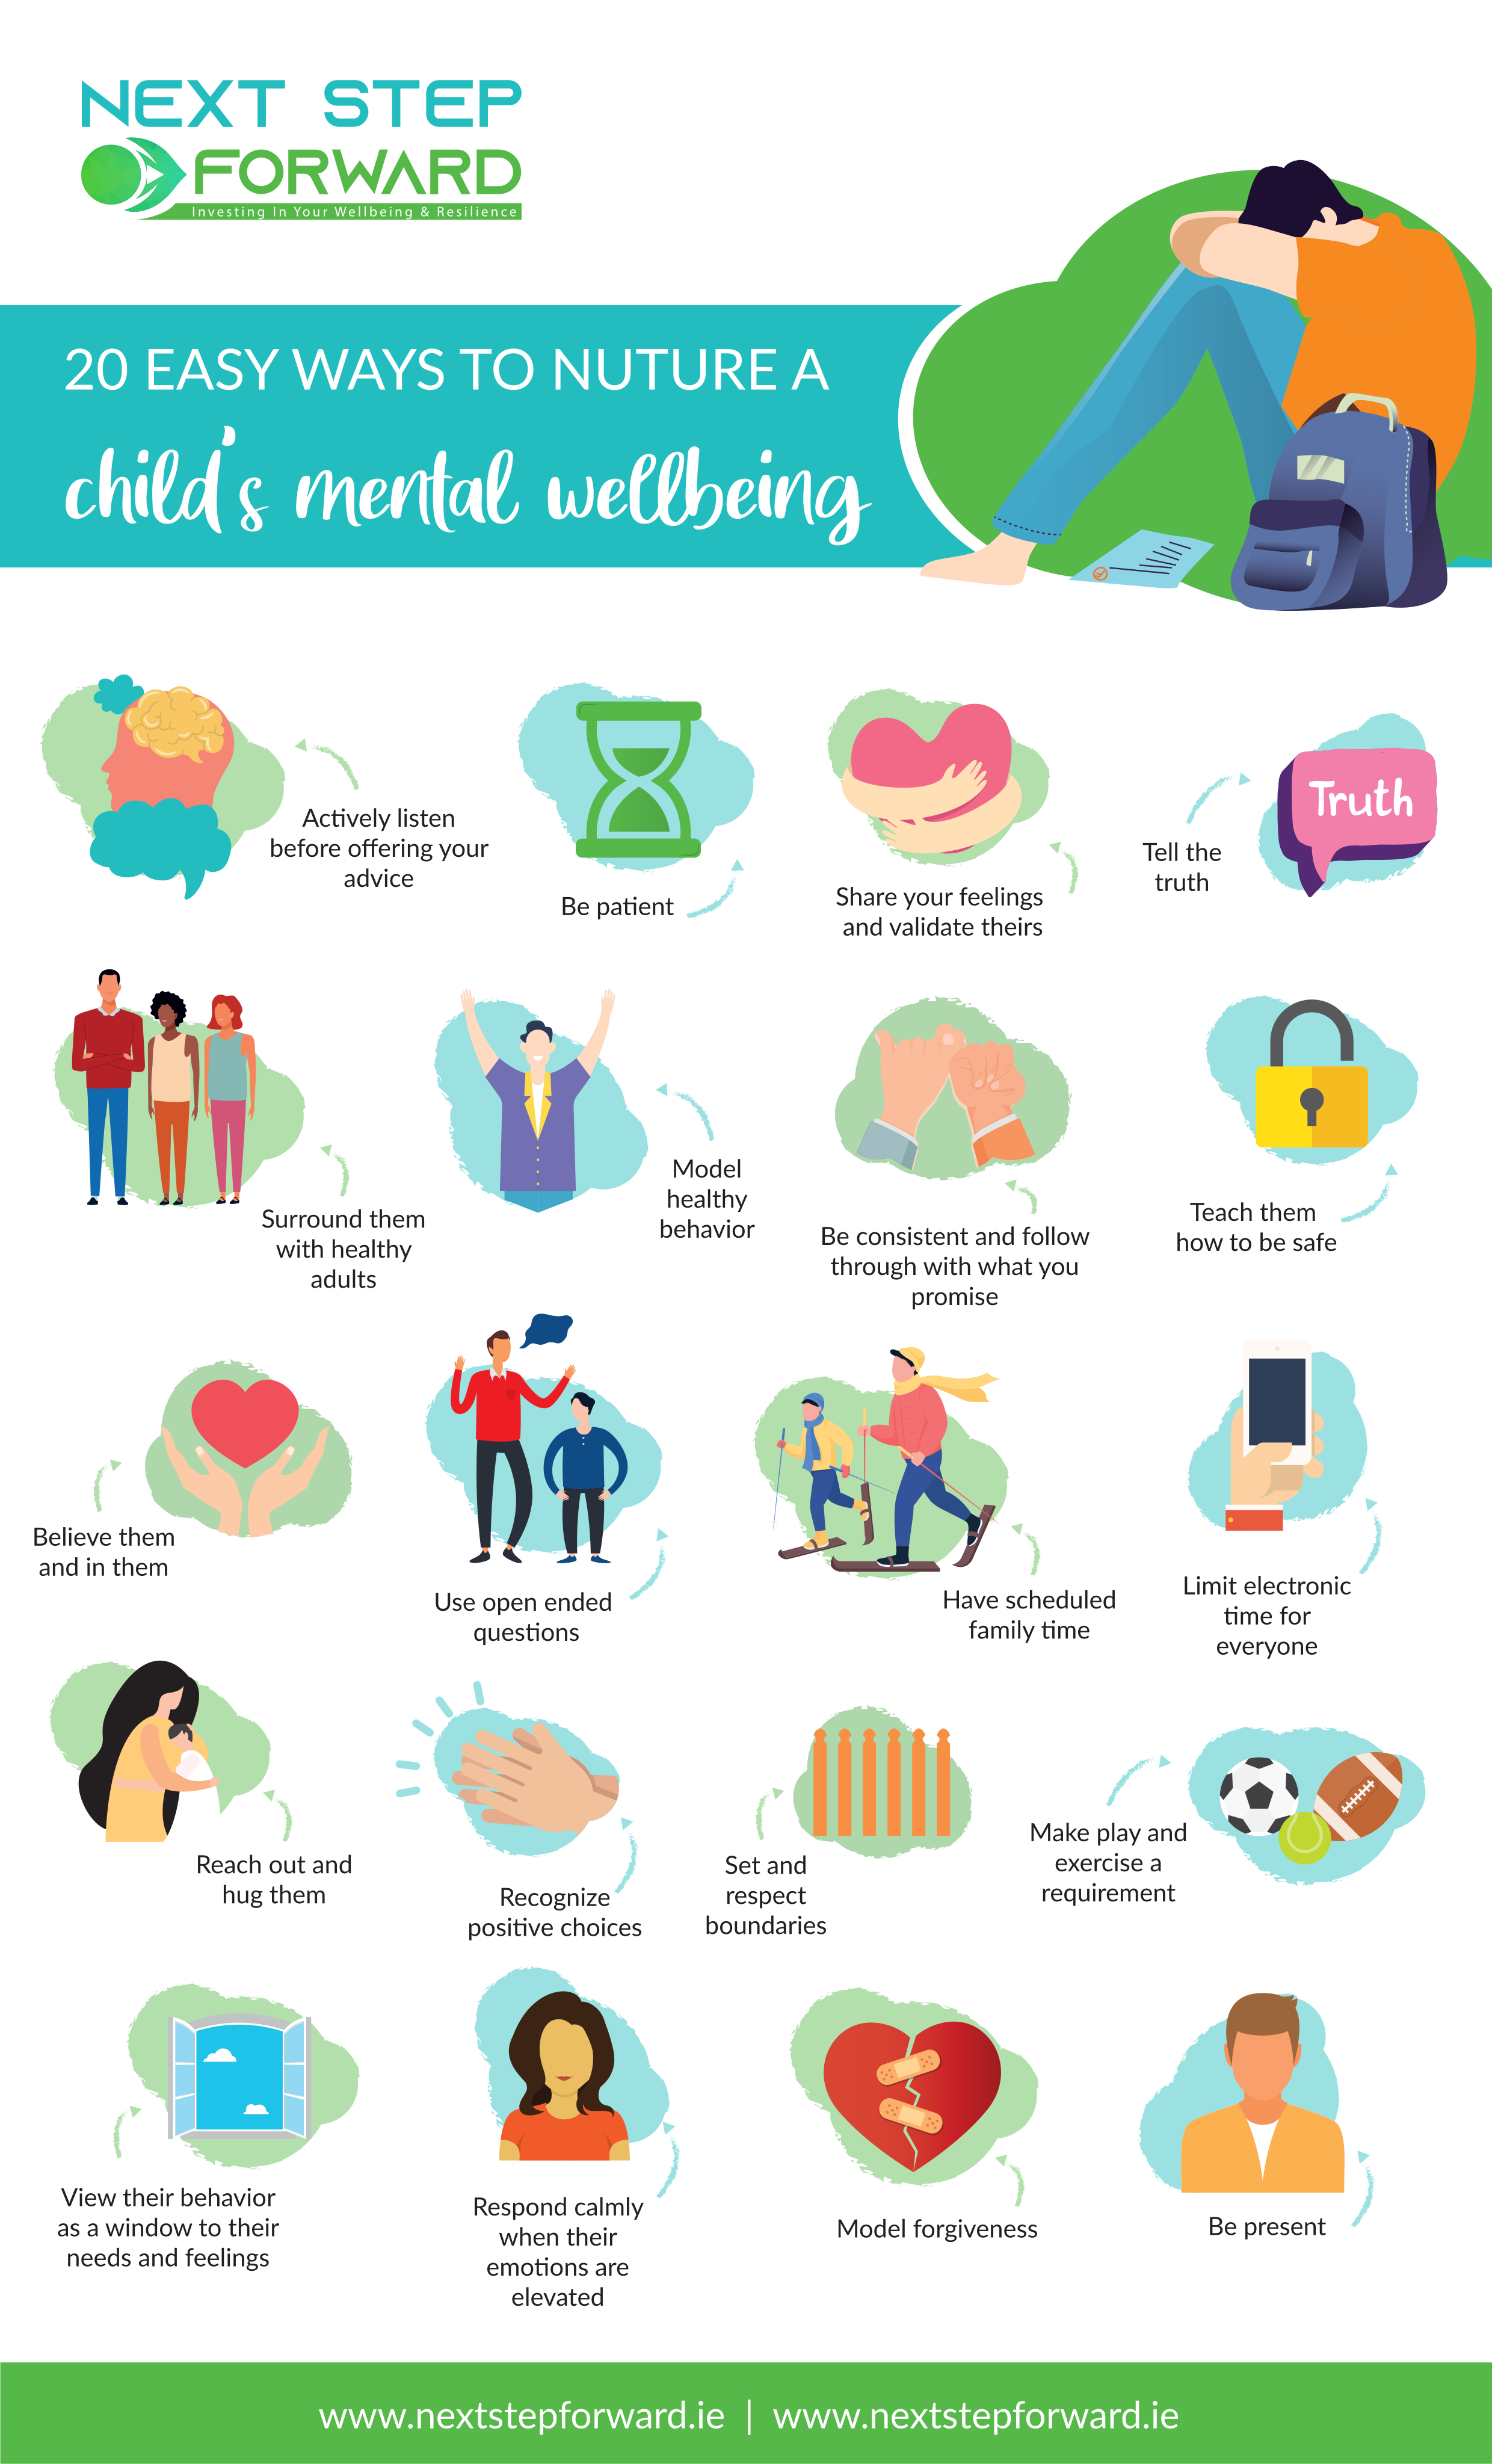 an infographic showing 20 different ways to improve a childs wellbeing